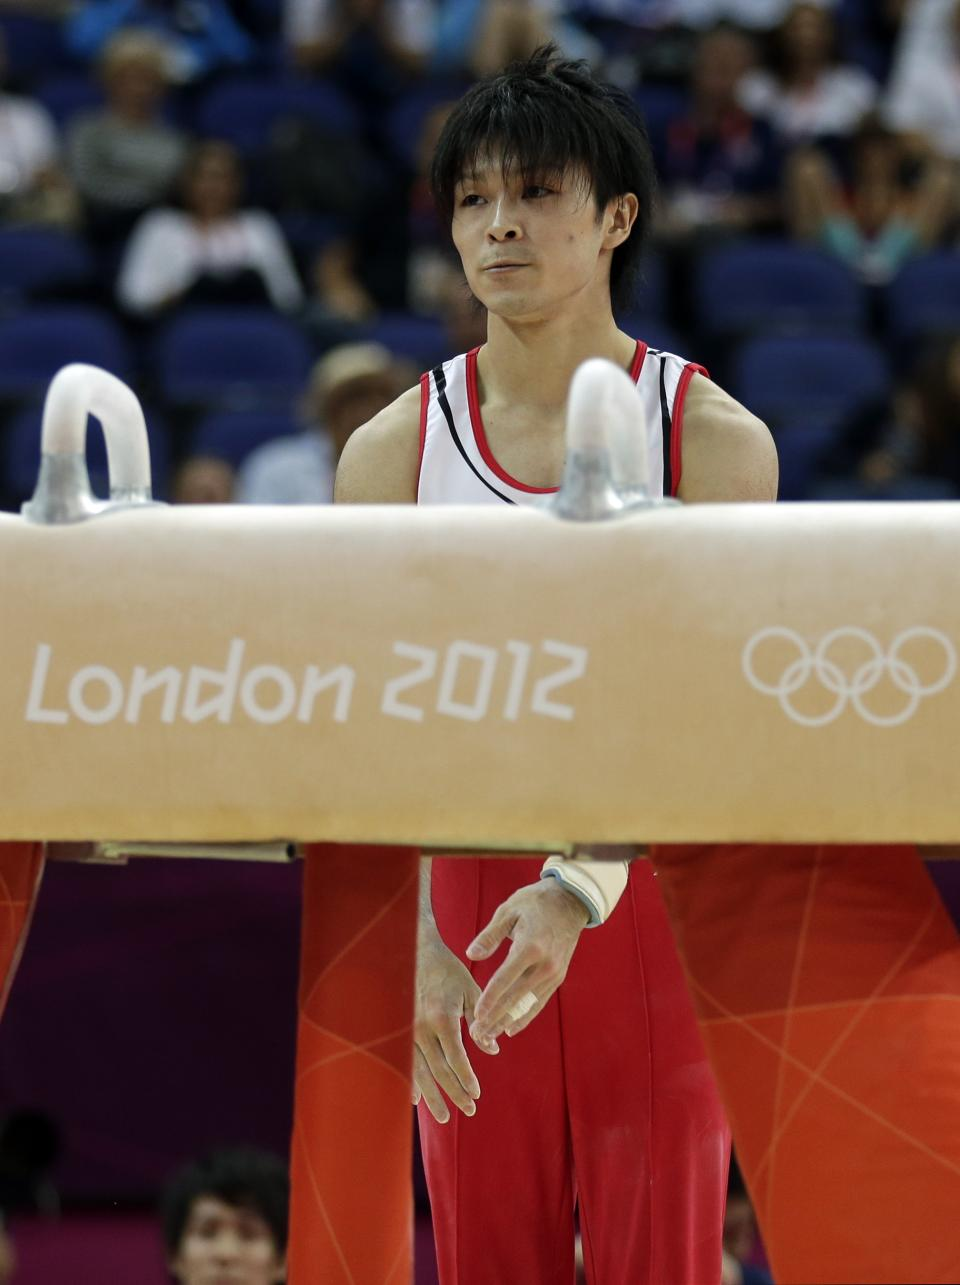 Japanese gymnast Kohei Uchimura reacts after slipping off the pommel horse during the Artistic Gymnastics men's qualification at the 2012 Summer Olympics, Saturday, July 28, 2012, in London. (AP Photo/Gregory Bull)